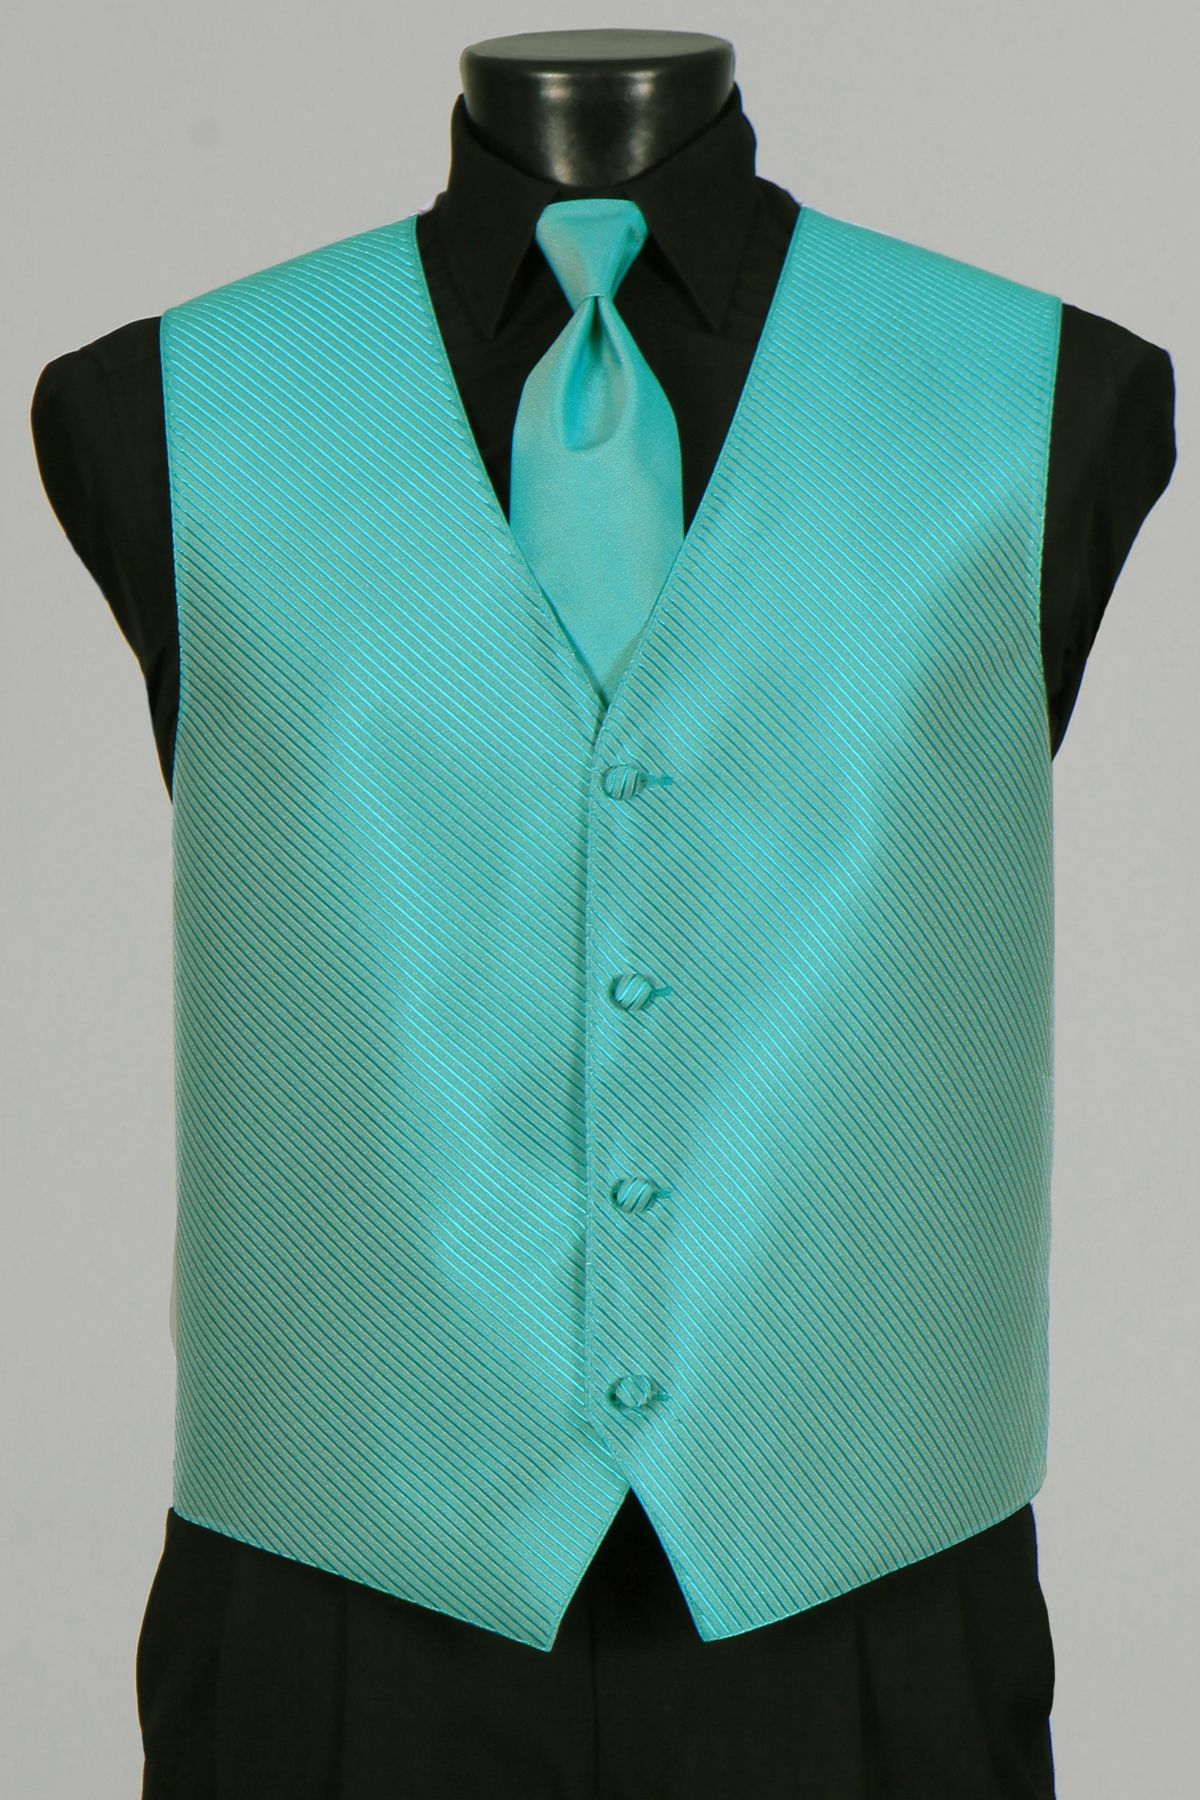 Tuxedos With Tiffany Blue Accessories Tuxedo Accessories Vests